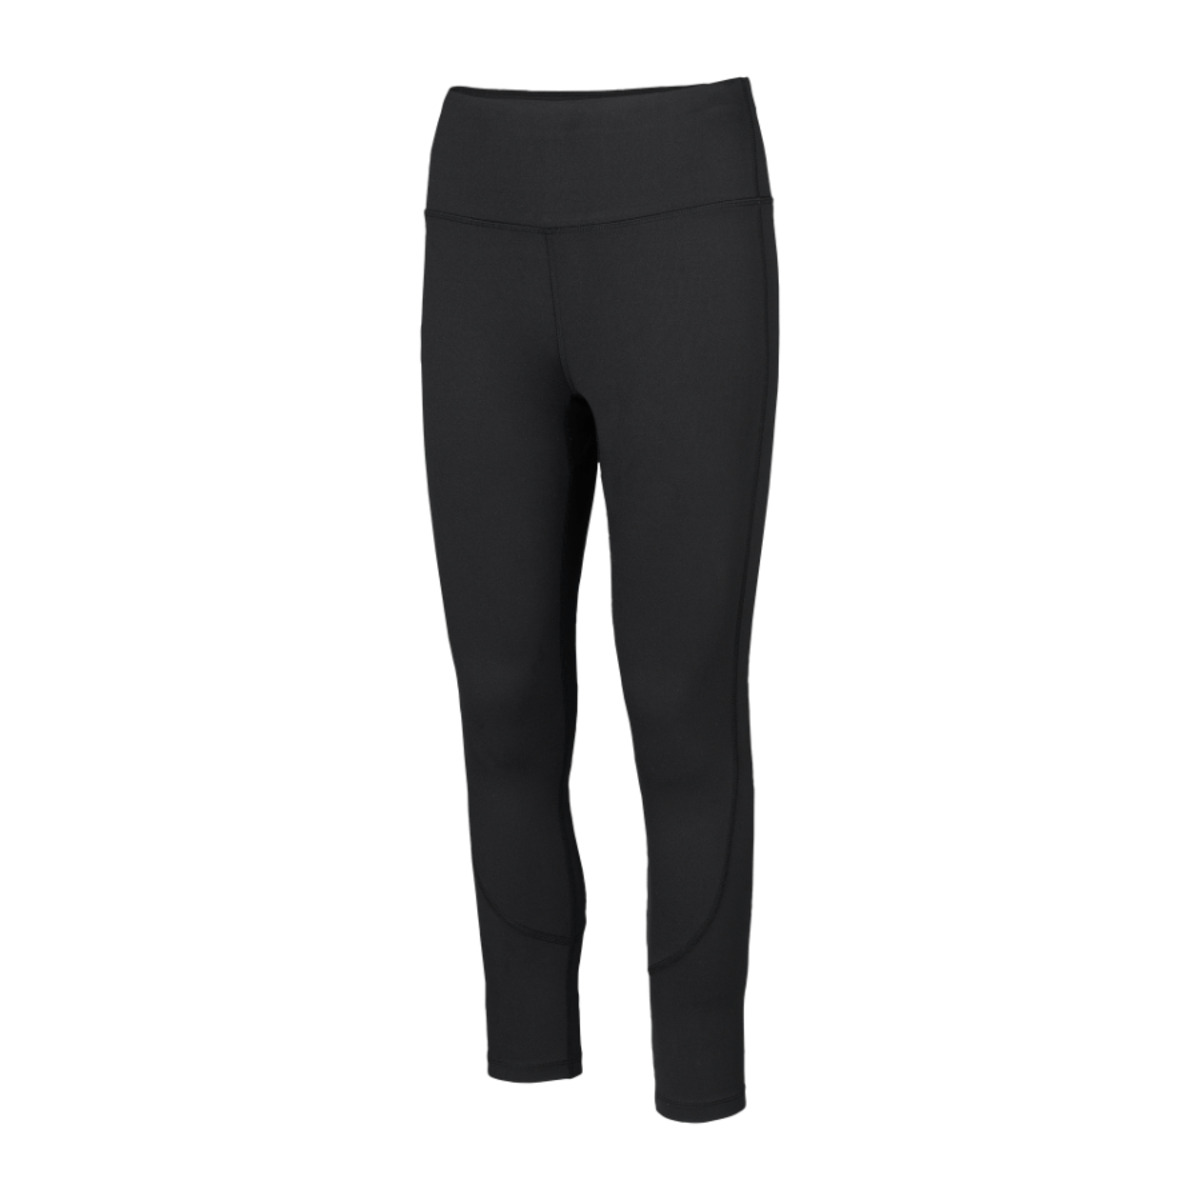 Bild 2 von ACTIVE TOUCH  	   Sport-Leggings